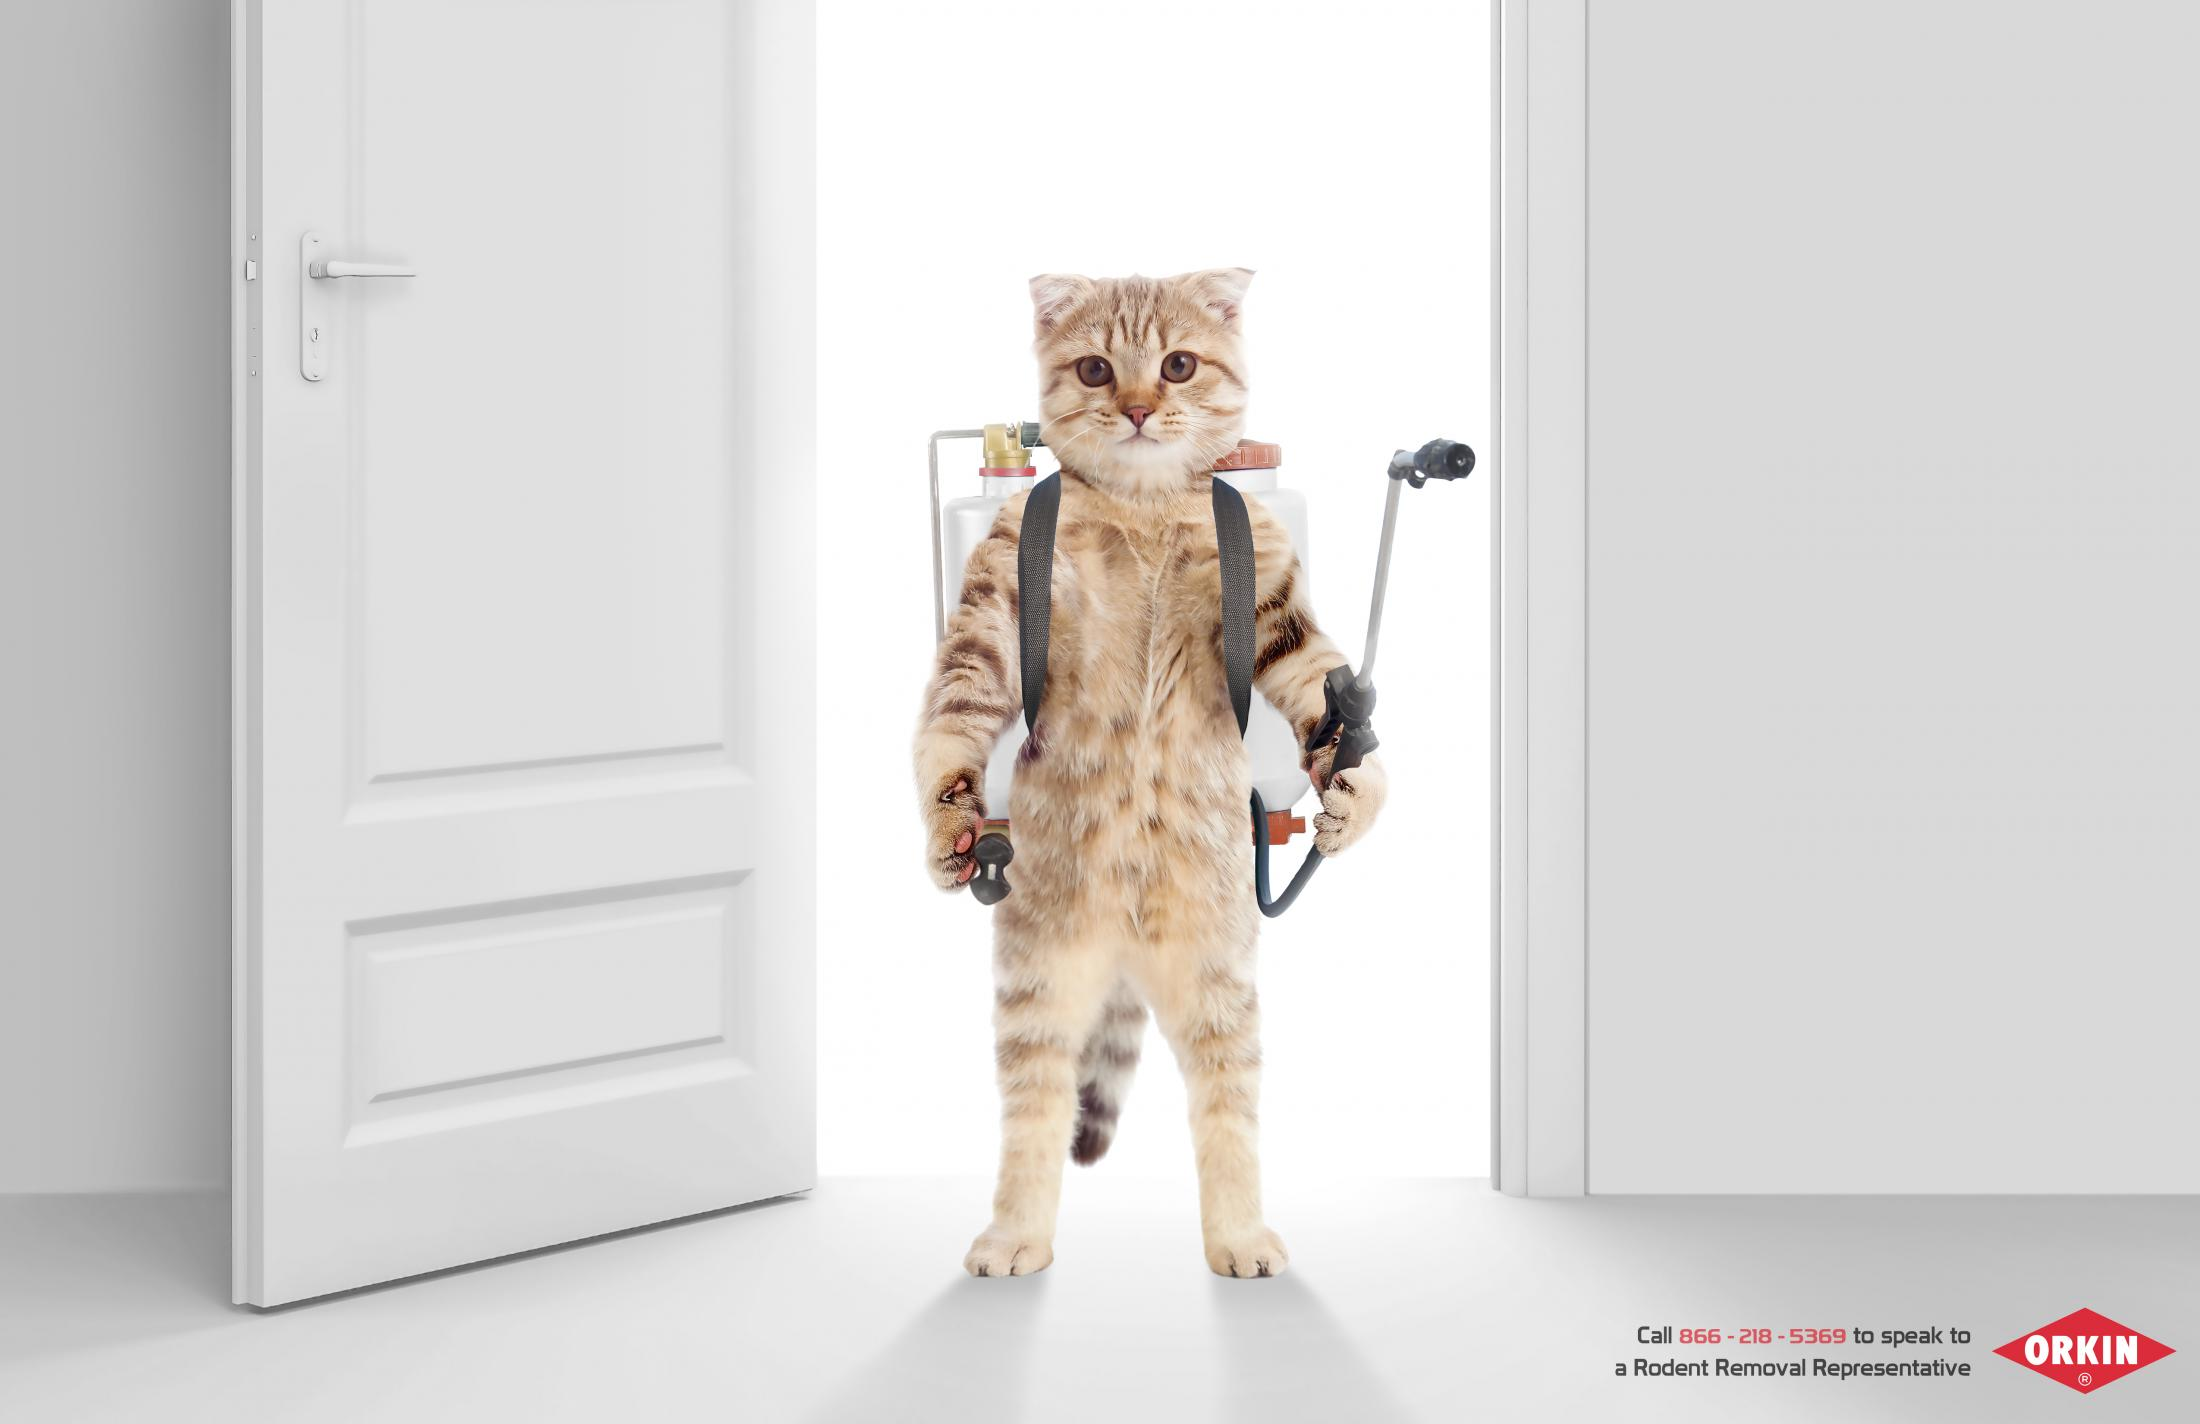 Orkin - The Pest Control Experts1